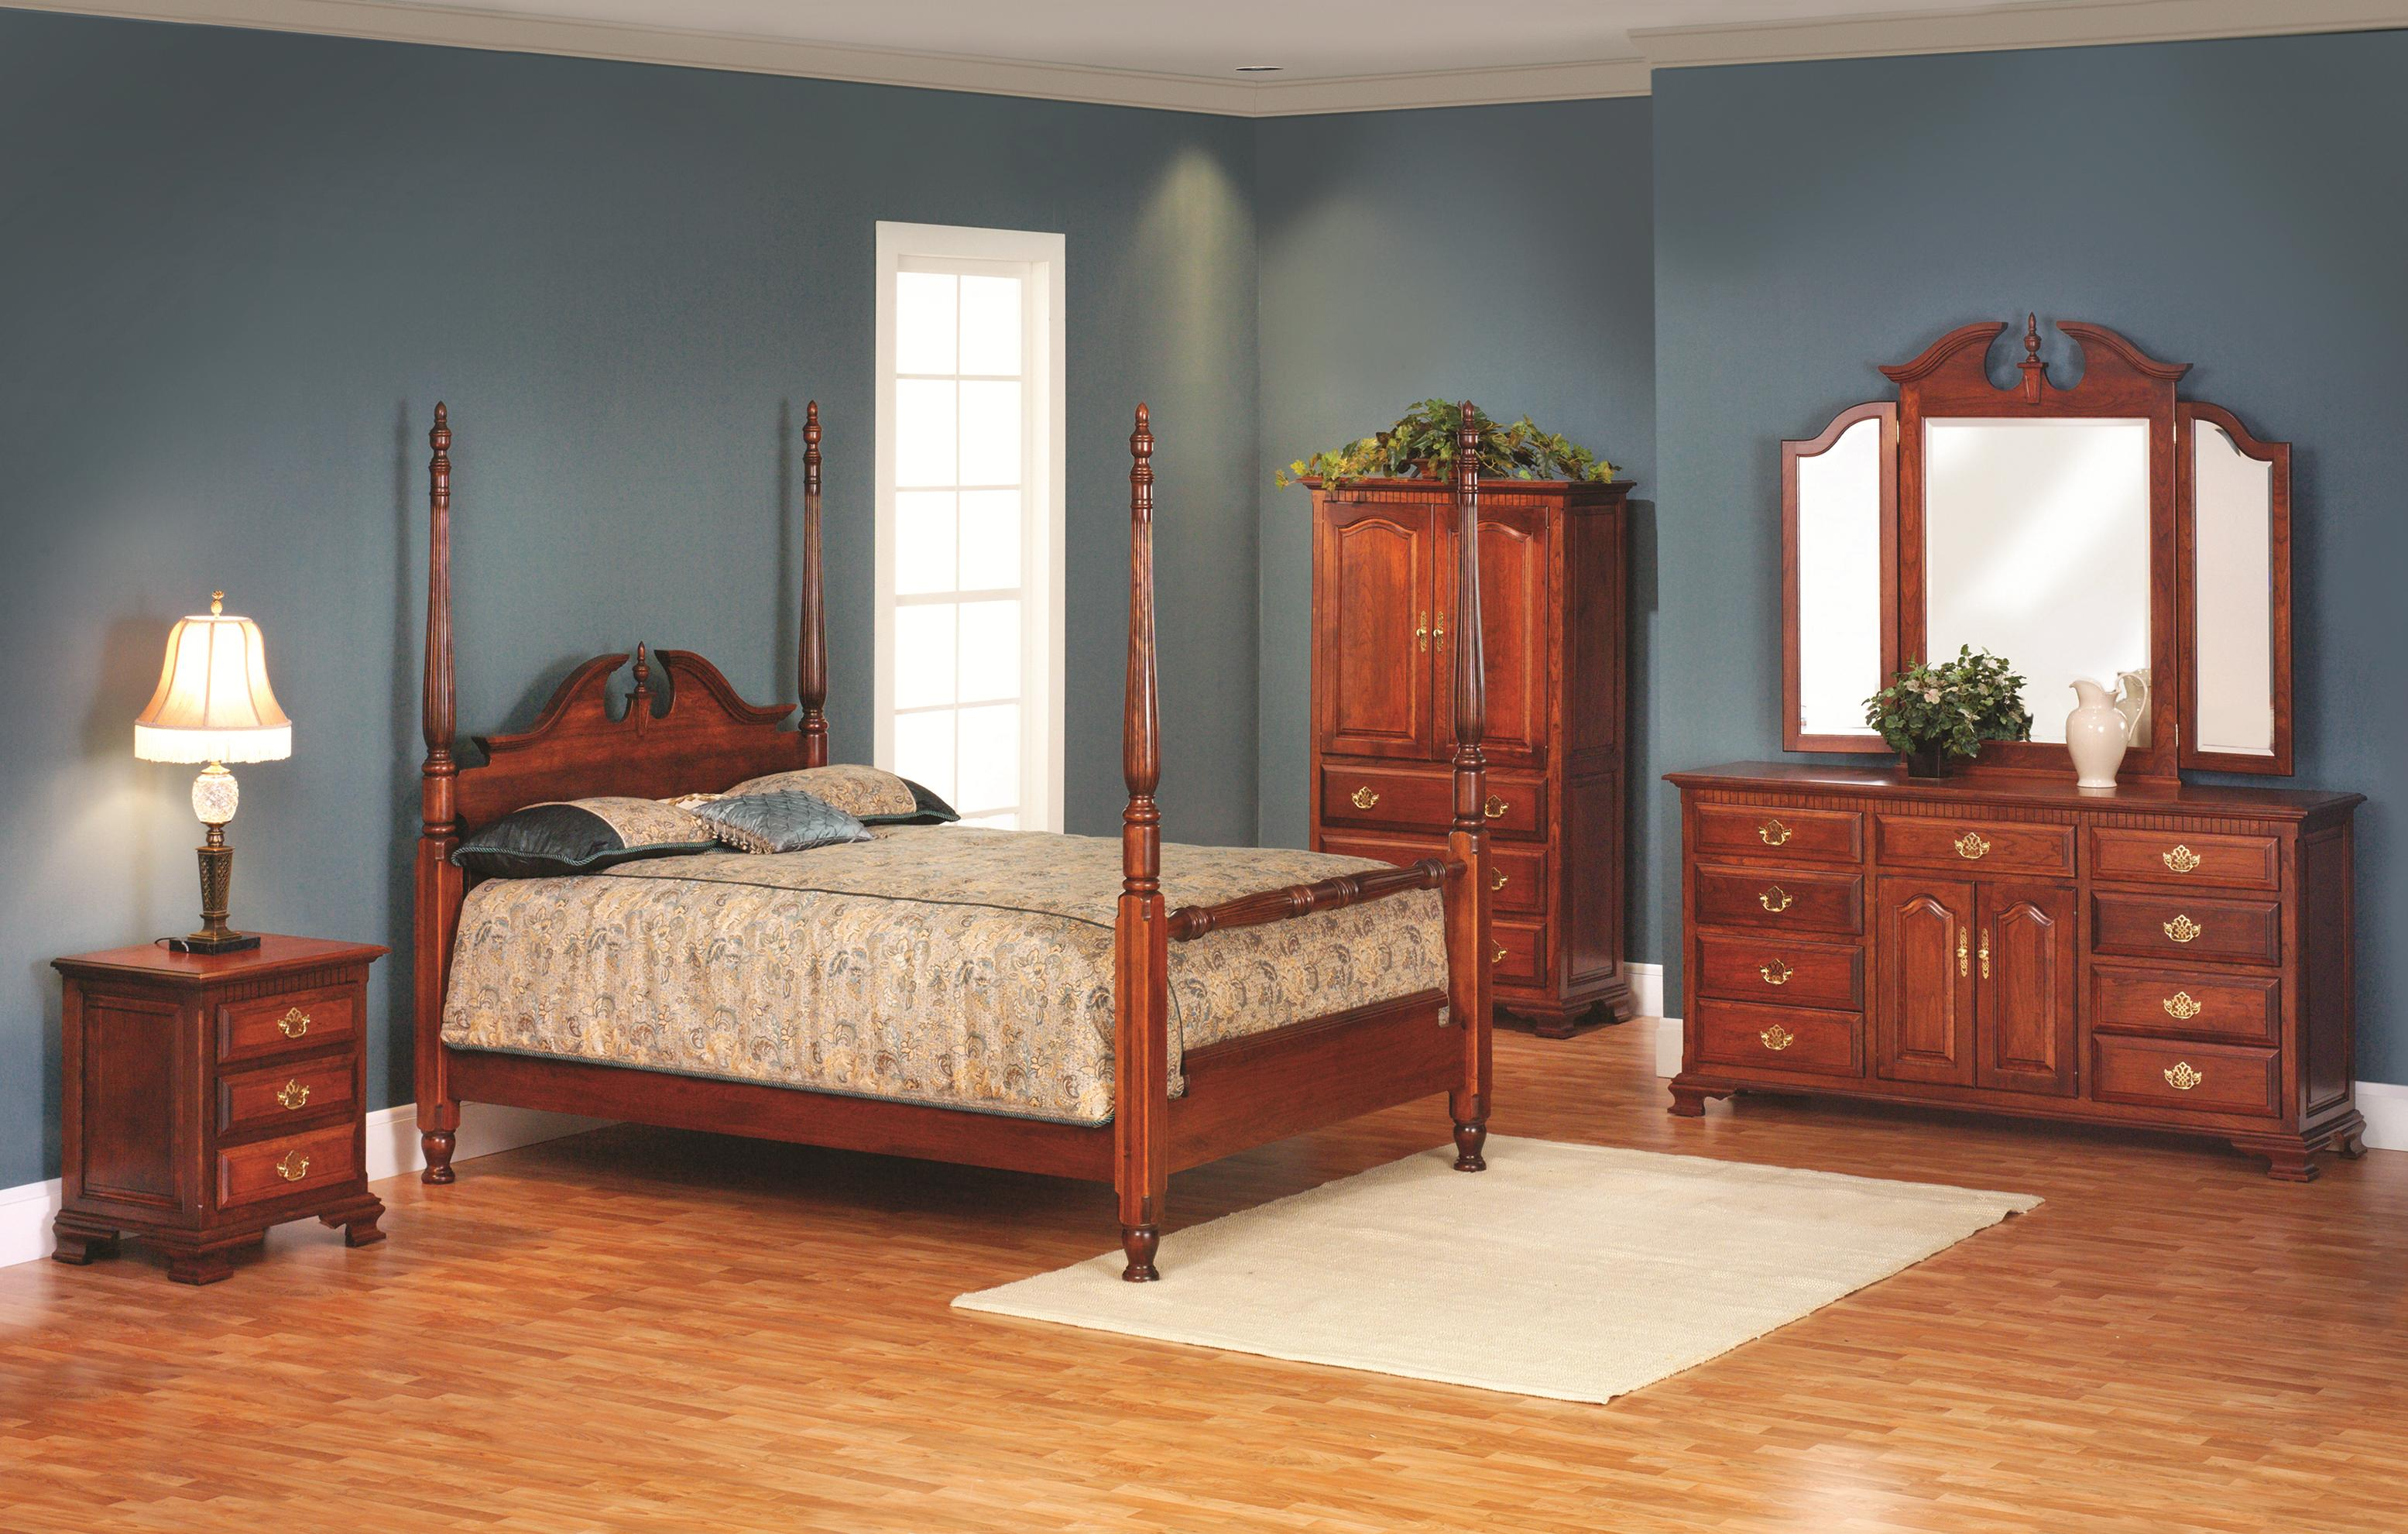 Victorias Tradition Queen Poster Bedroom Group by Millcraft at Saugerties Furniture Mart